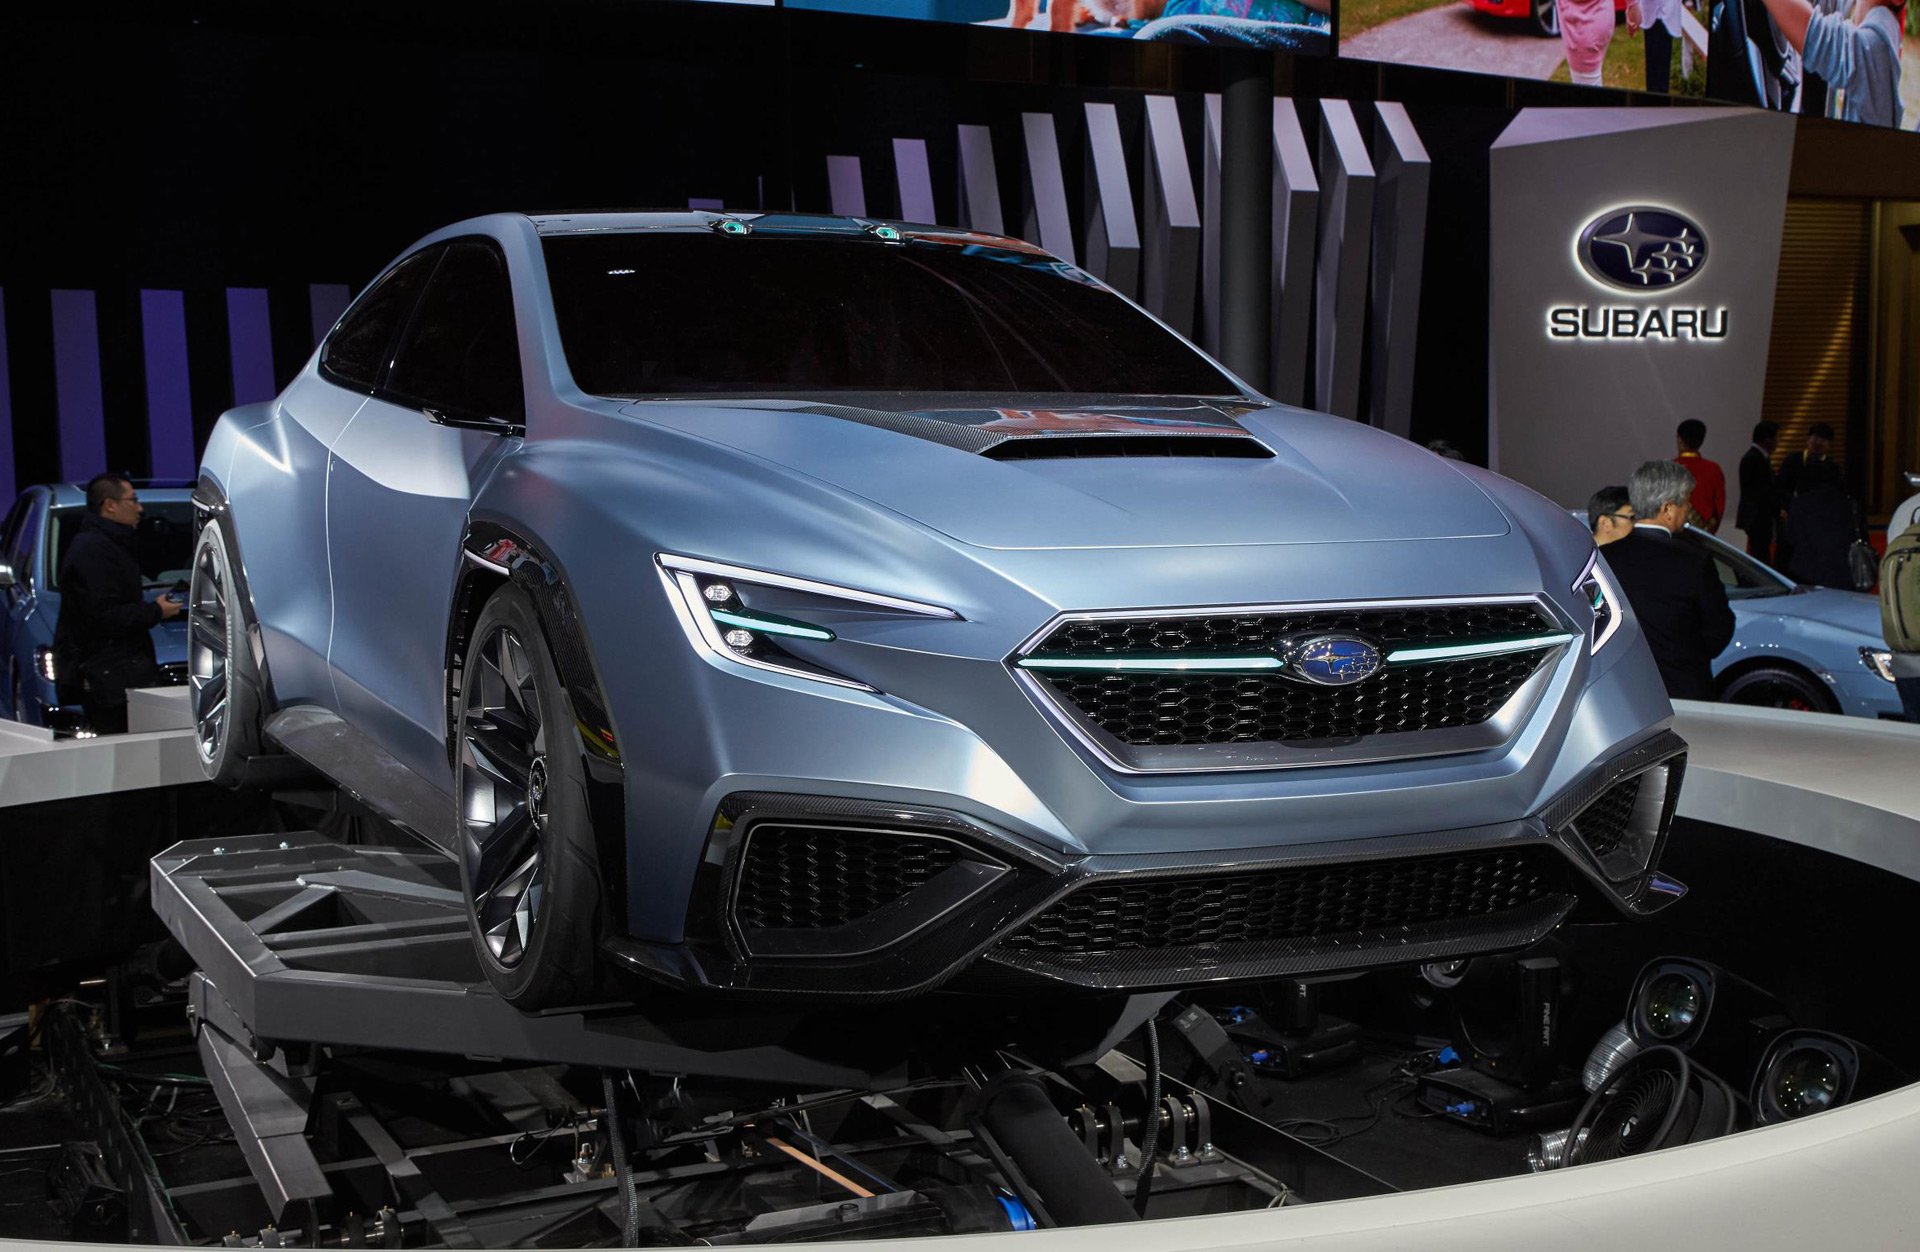 Subaru hints at next-gen WRX with Viziv Performance concept